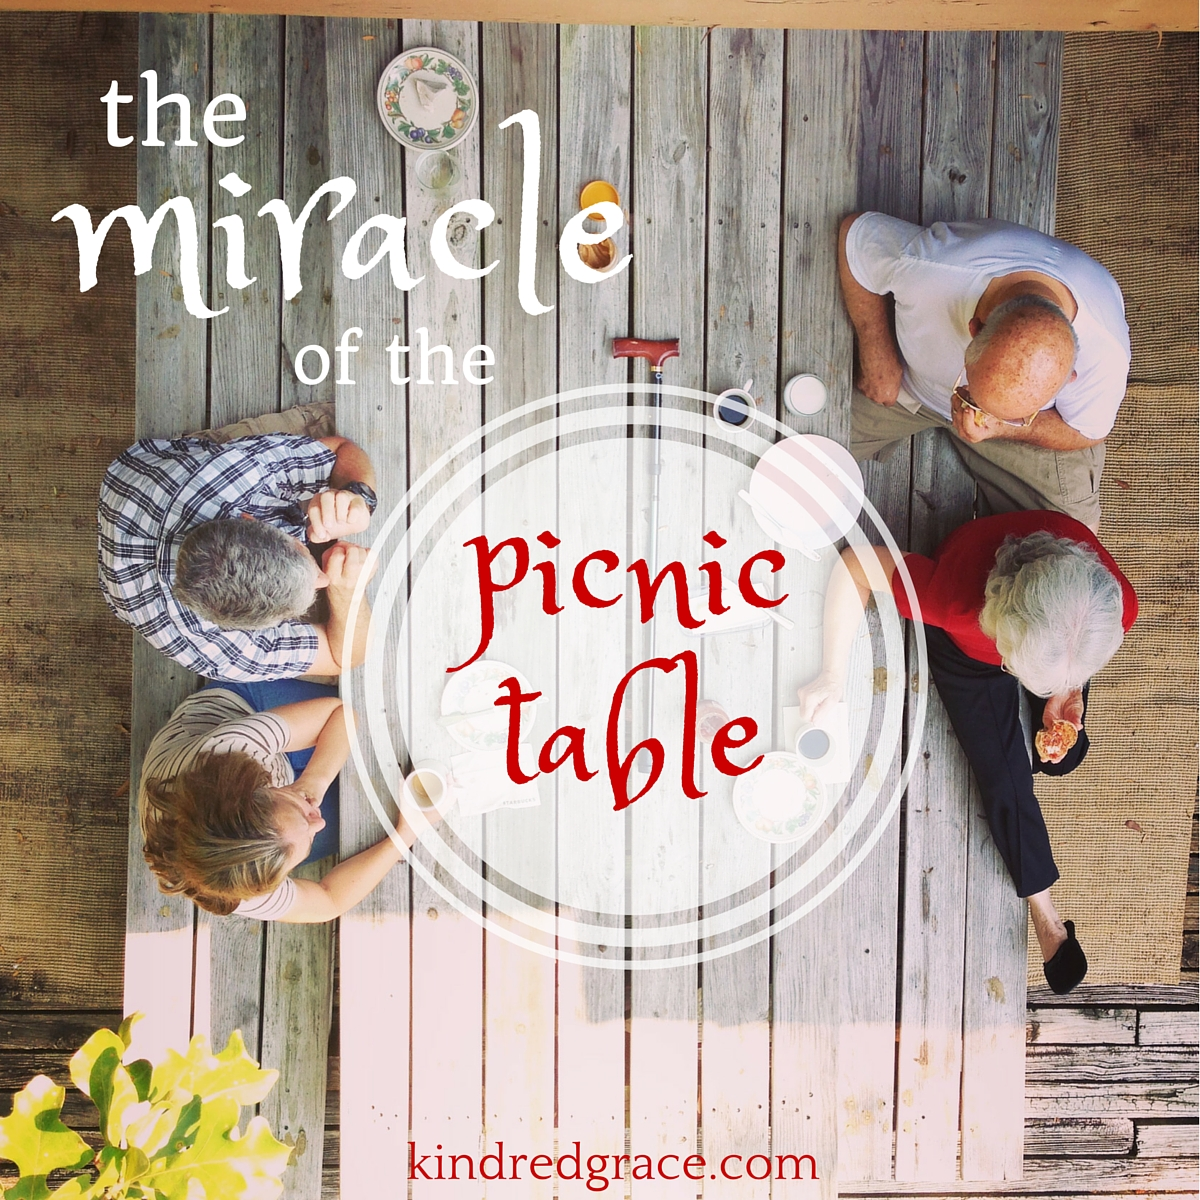 """the miracle of the picnic table"" kindredgrace.com"